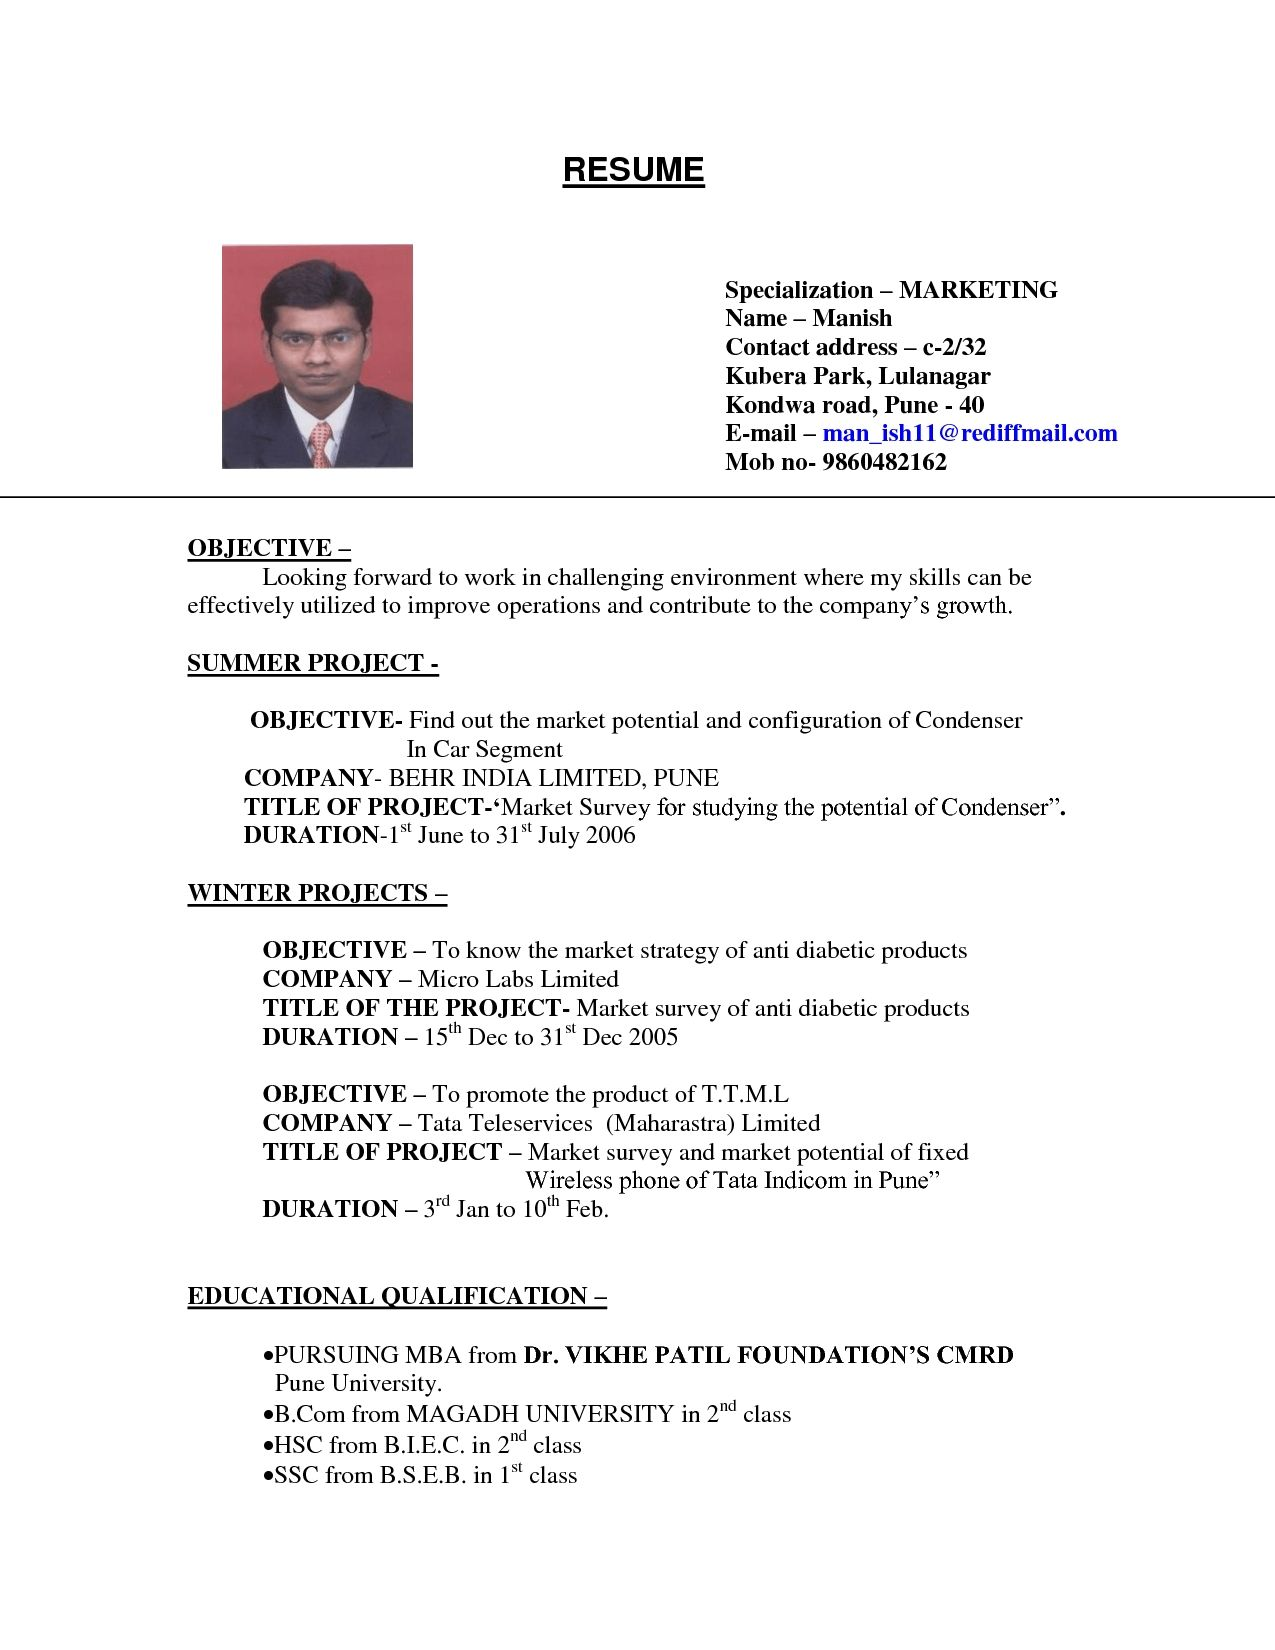 How To Write Resume Letter For Job Examples Of Resumes Sample Resume For College Student